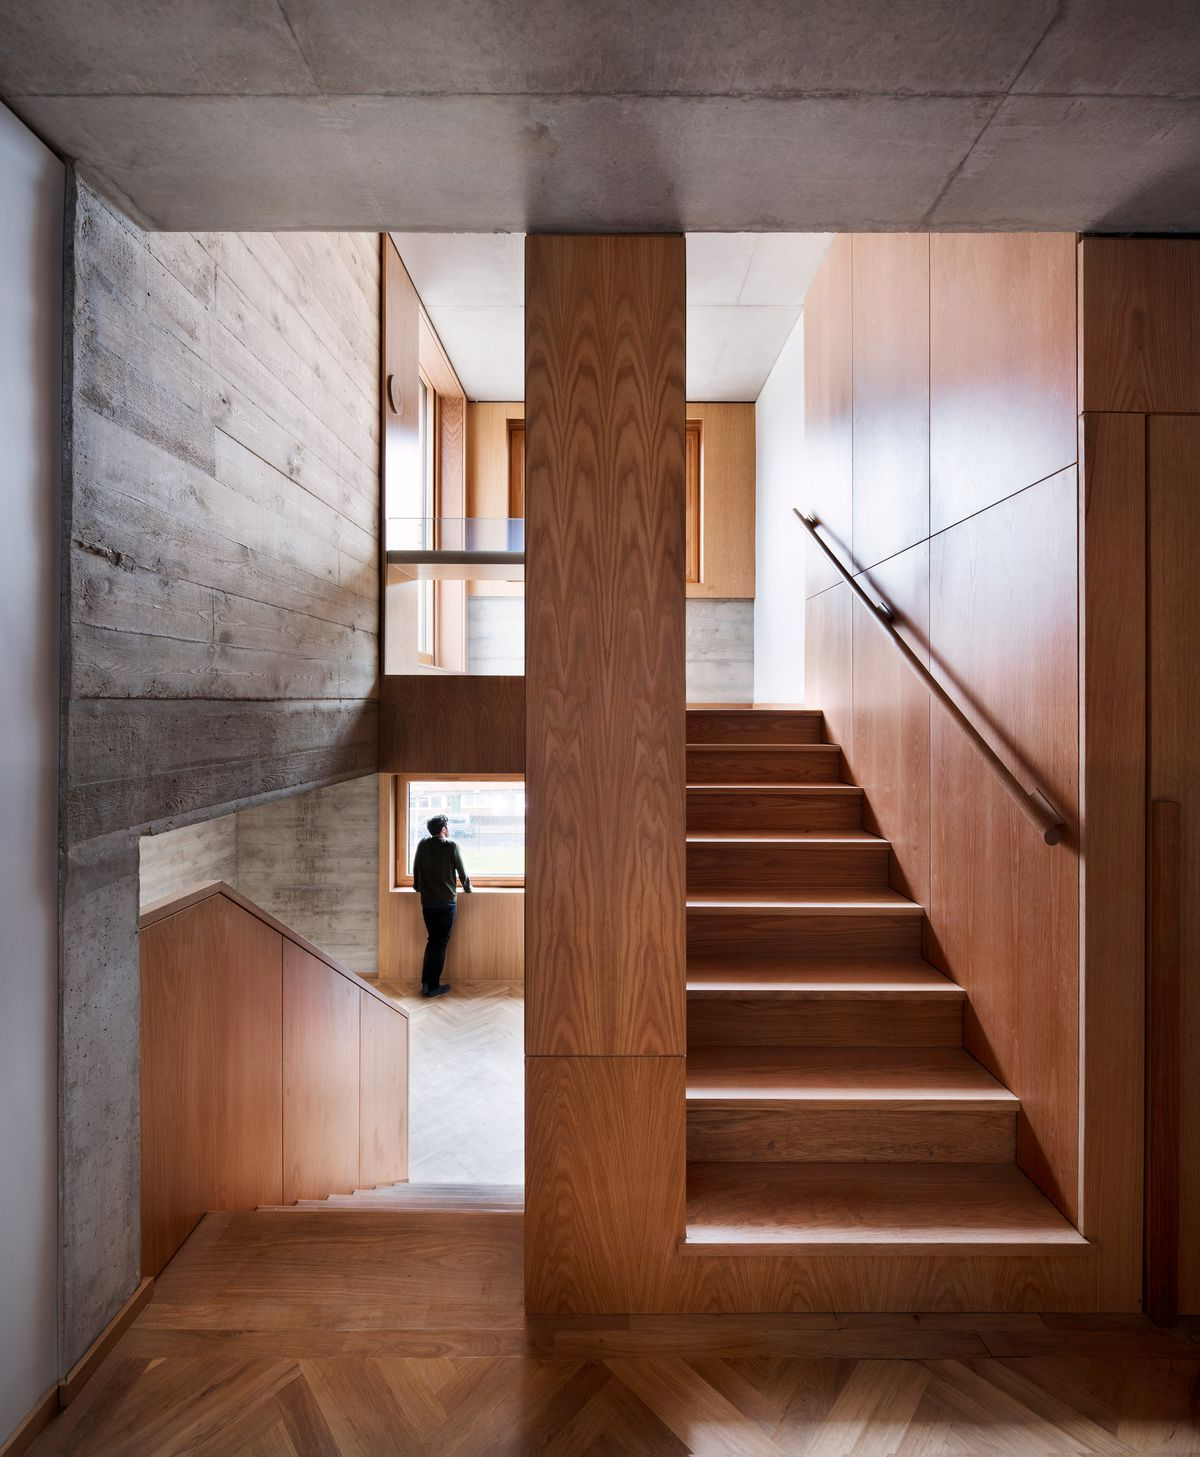 Interior shot of stairs and landing